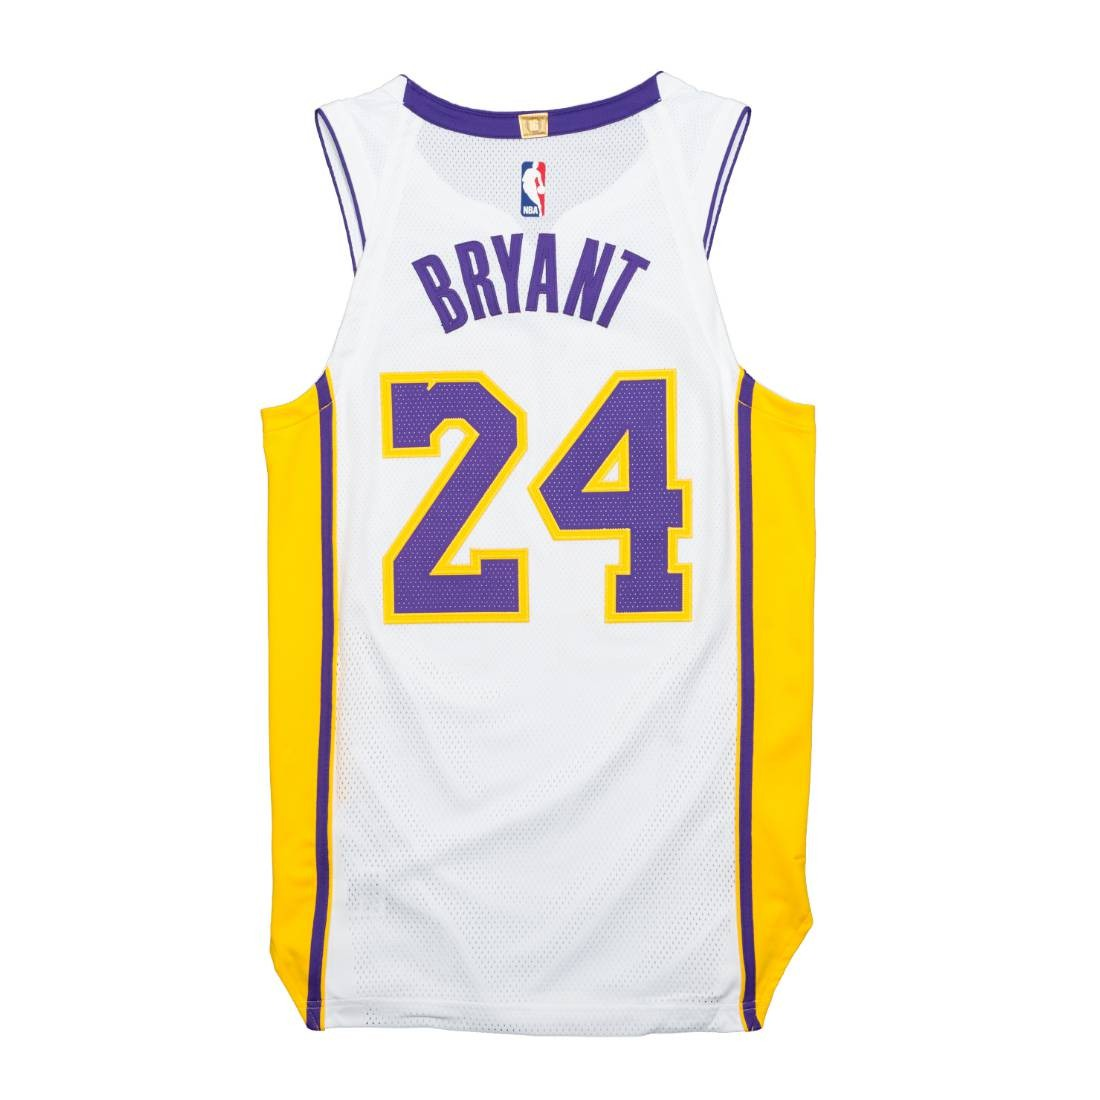 bd8c1b1731fe Nike Men Kobe Bryant Statement Edition Authentic Jersey (Los Angeles  Lakers) (white)